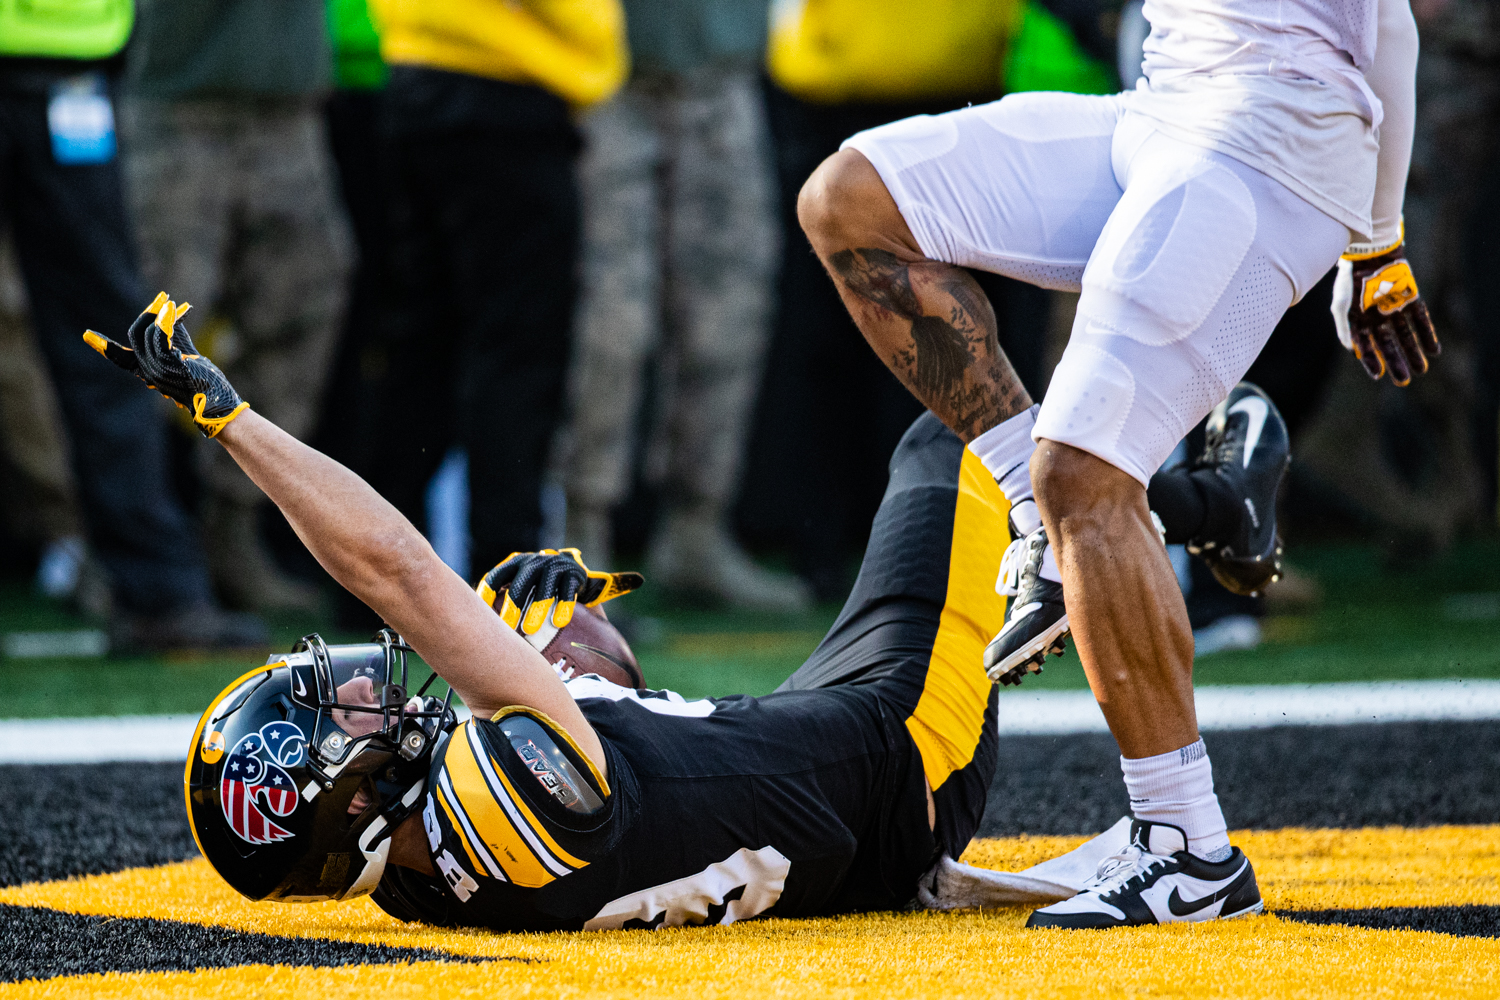 Iowa wideout Nico Ragaini scores a touchdown during a football game between Iowa and Minnesota at Kinnick Stadium on Saturday, Nov. 16, 2019. The Hawkeyes would fail the point-after attempt.